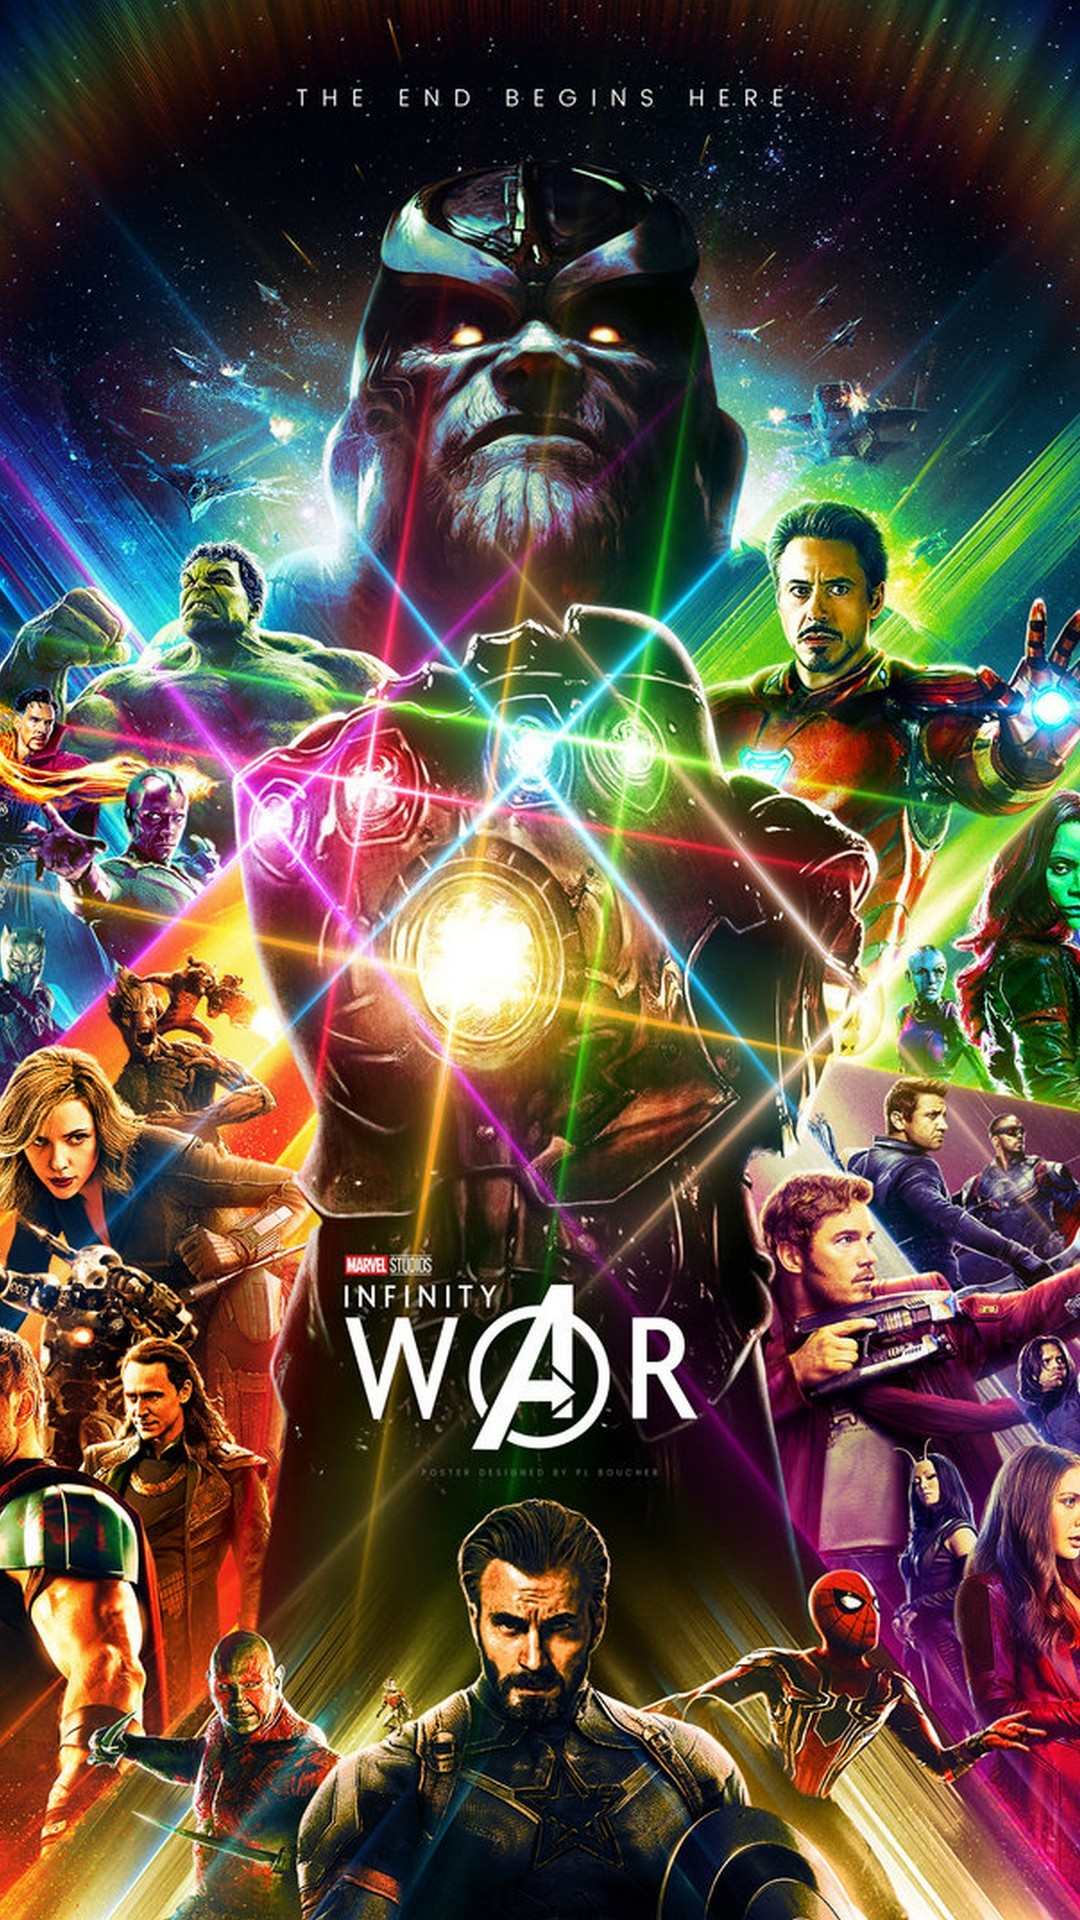 Avengers Infinity War Wallpaper Android With Hd Resolution